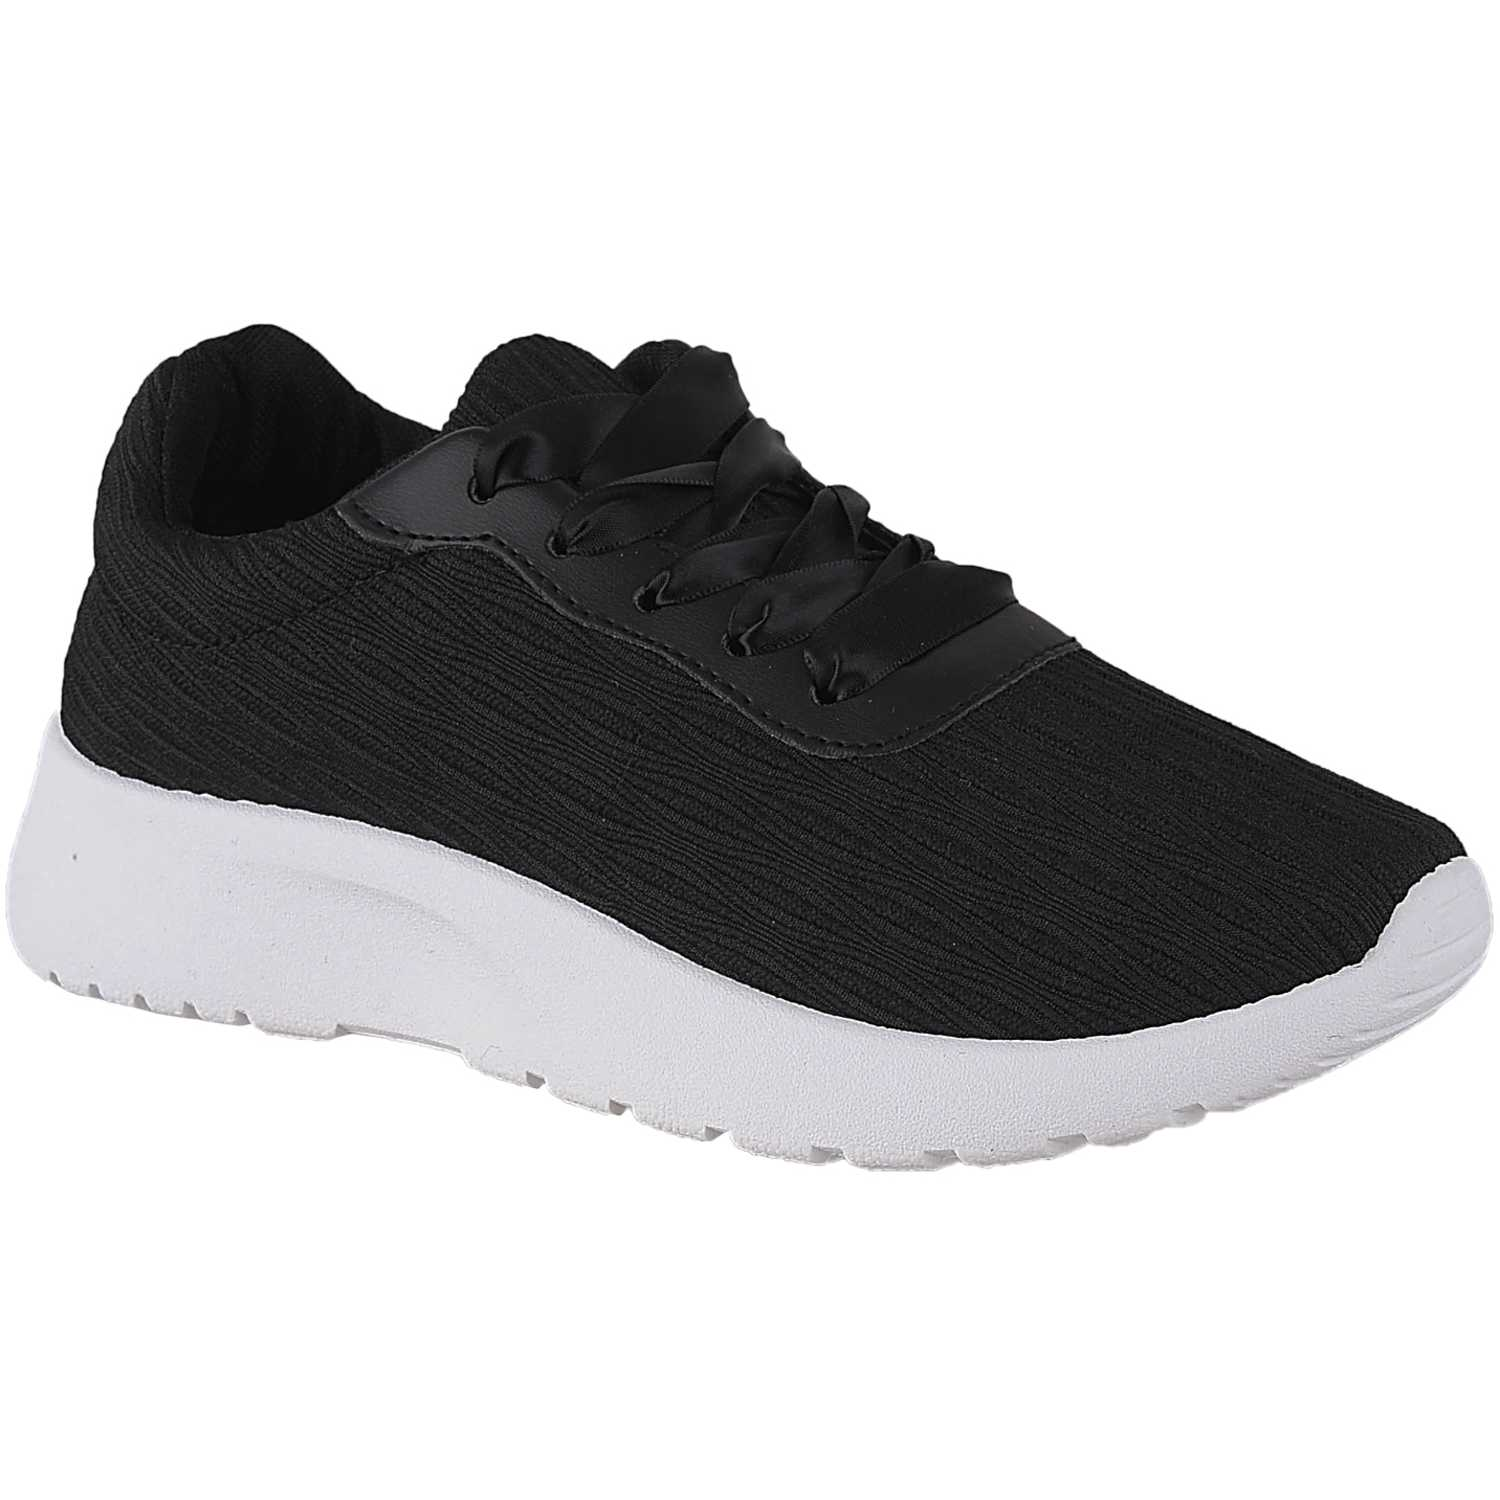 Platanitos z 1887 Negro Zapatillas Fashion